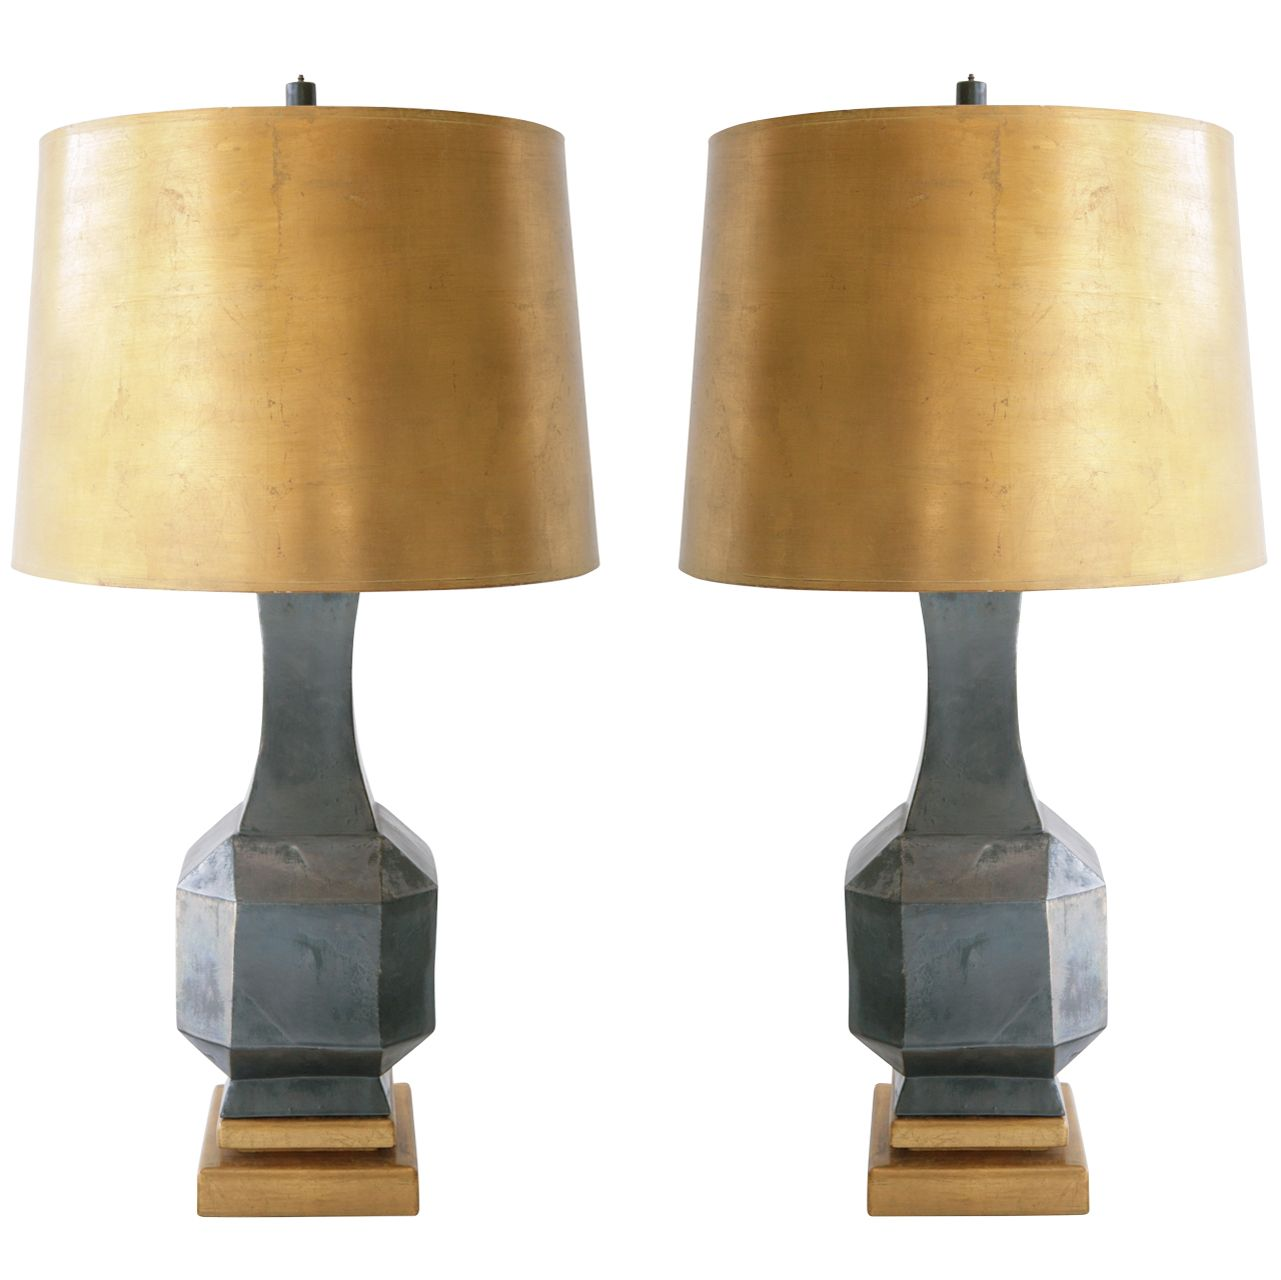 Pair Of Gunmetal Grey Glazed Ceramic Lamps With Gold Leaf Shades